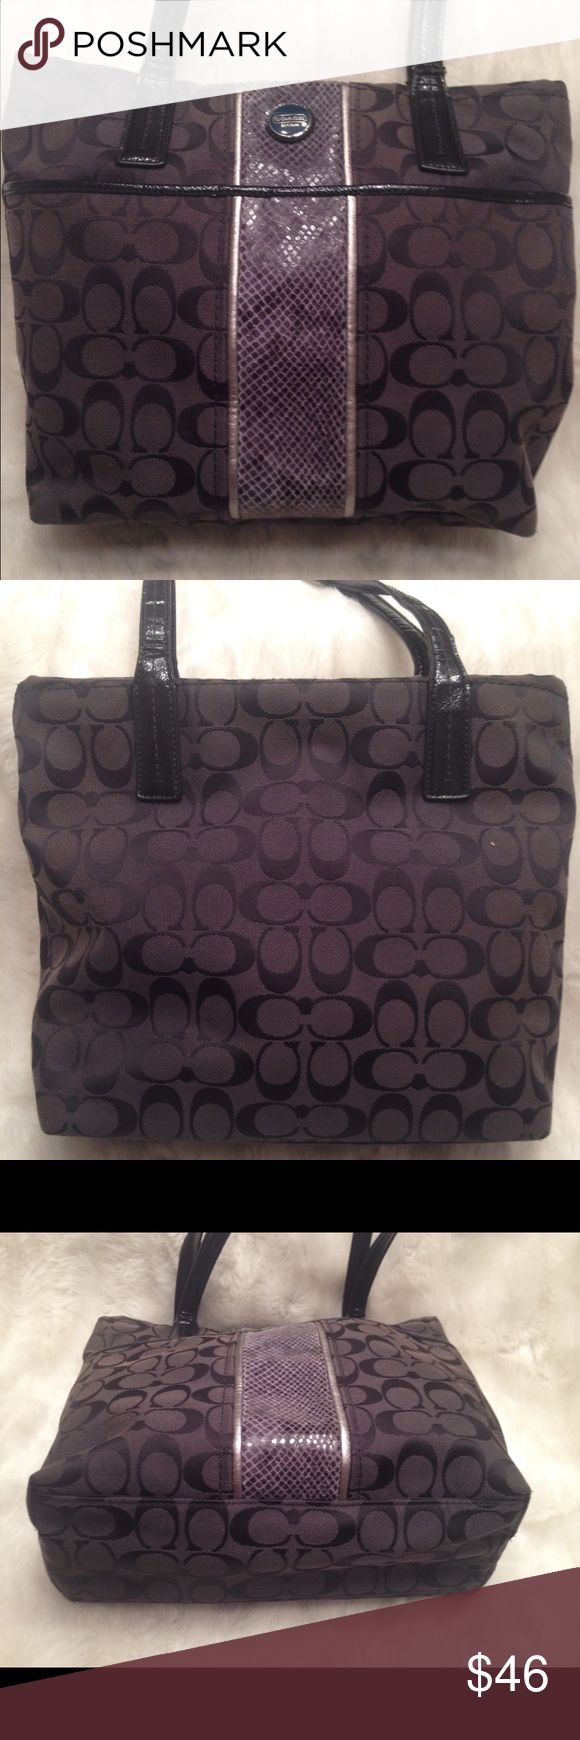 COACH Signature Python Stripe Shoulder Bag COACH#H1360-F25706. Clean liner. Good straps. No scuffs and snags. Has a real faint wear on the python print near zipper shown in pic. Measures 10x12 Coach Bags Shoulder Bags